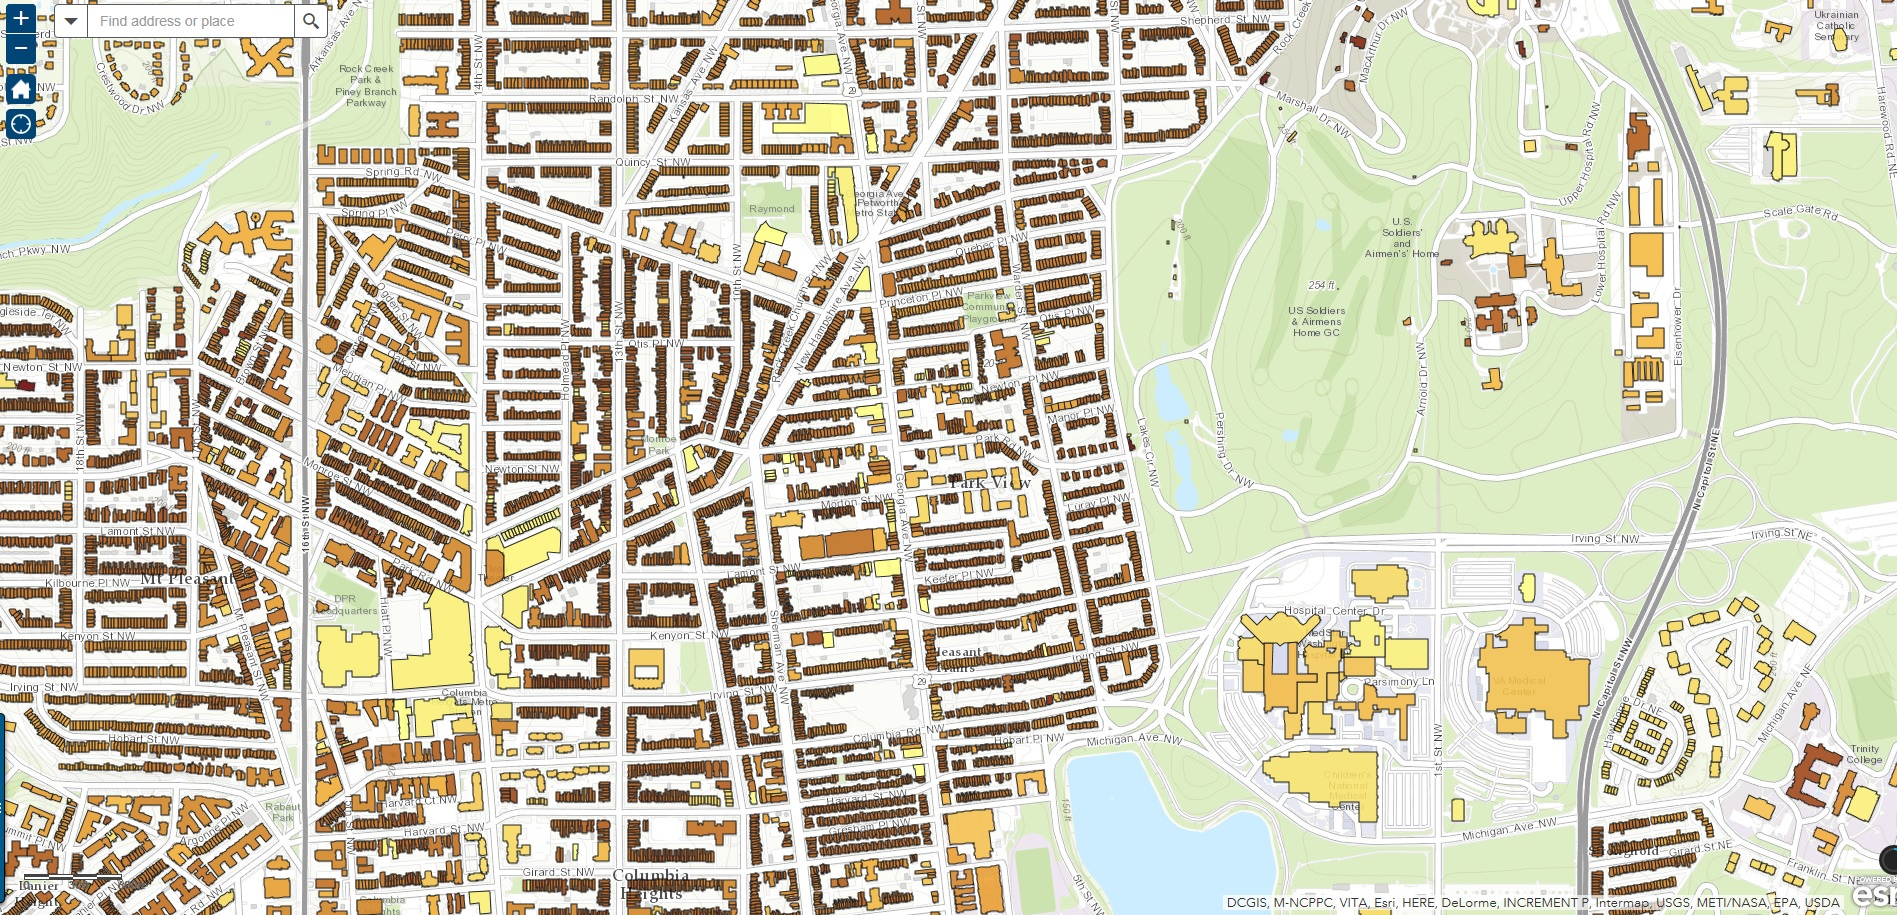 Washington Dc Neighborhood Map Washington Dc Neighborhoods Map 37